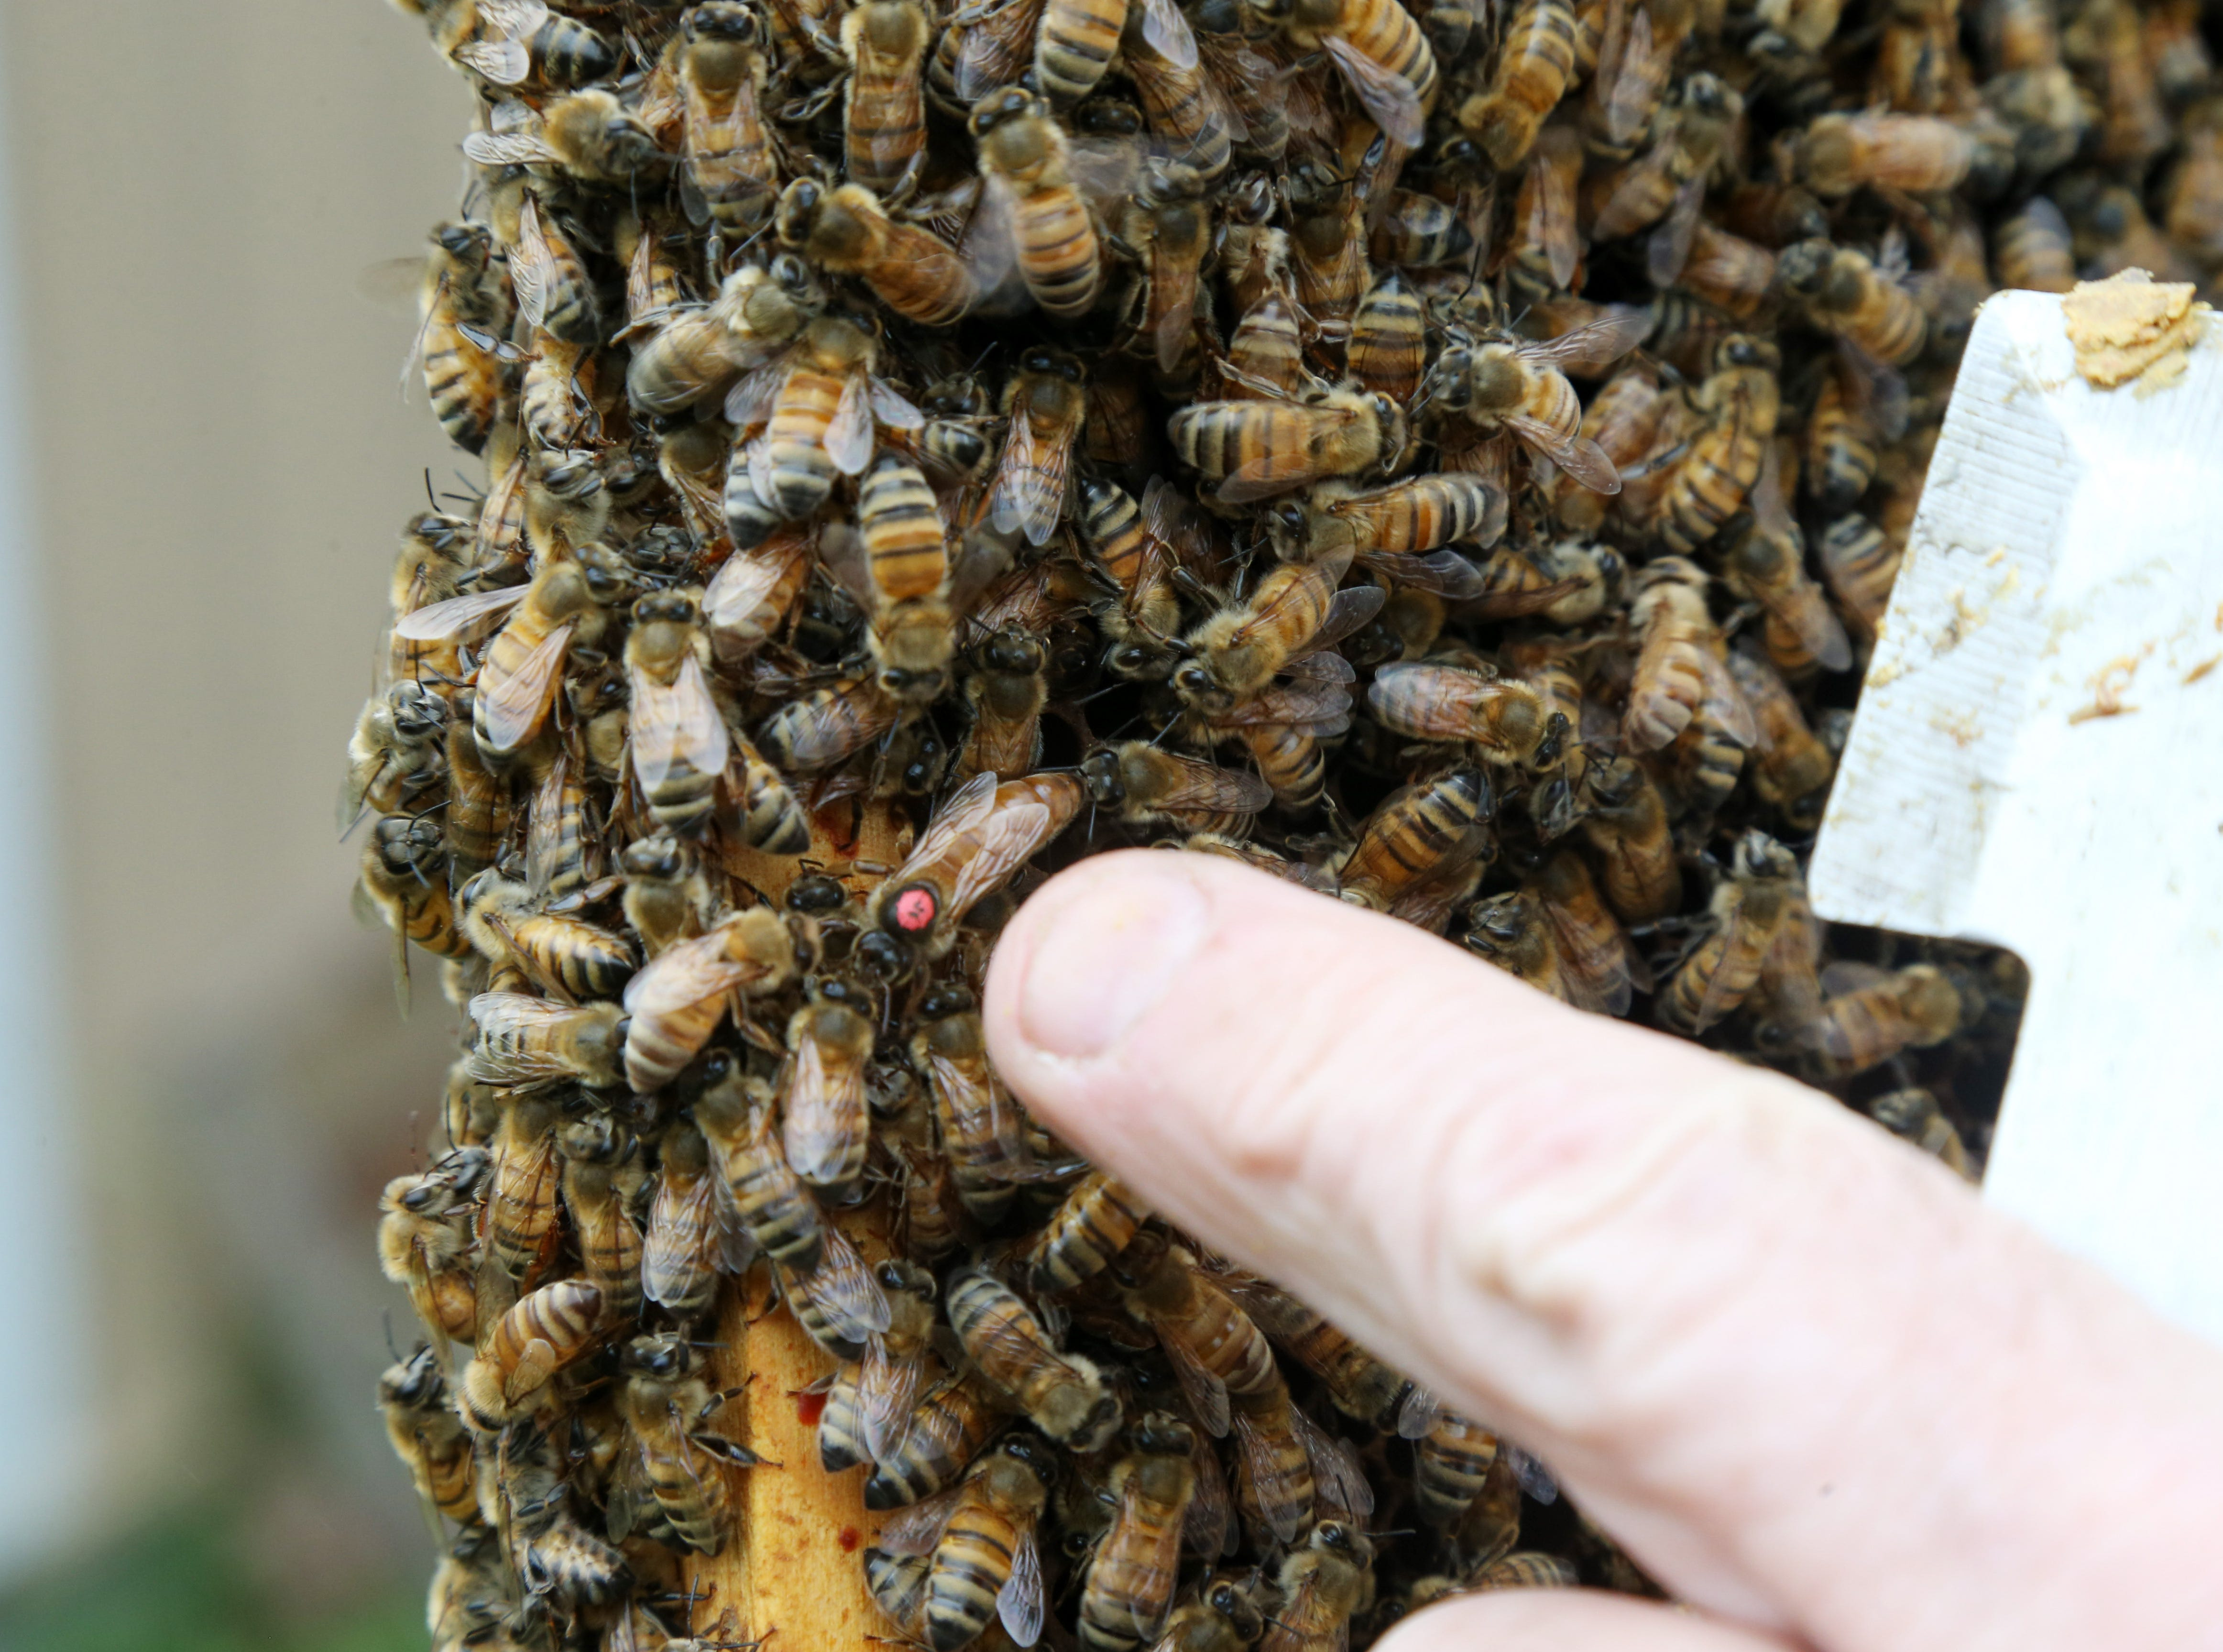 Dennis Remsburger points out the queen bee from the beehive at his home in Pleasant Valley on October 8, 2018.